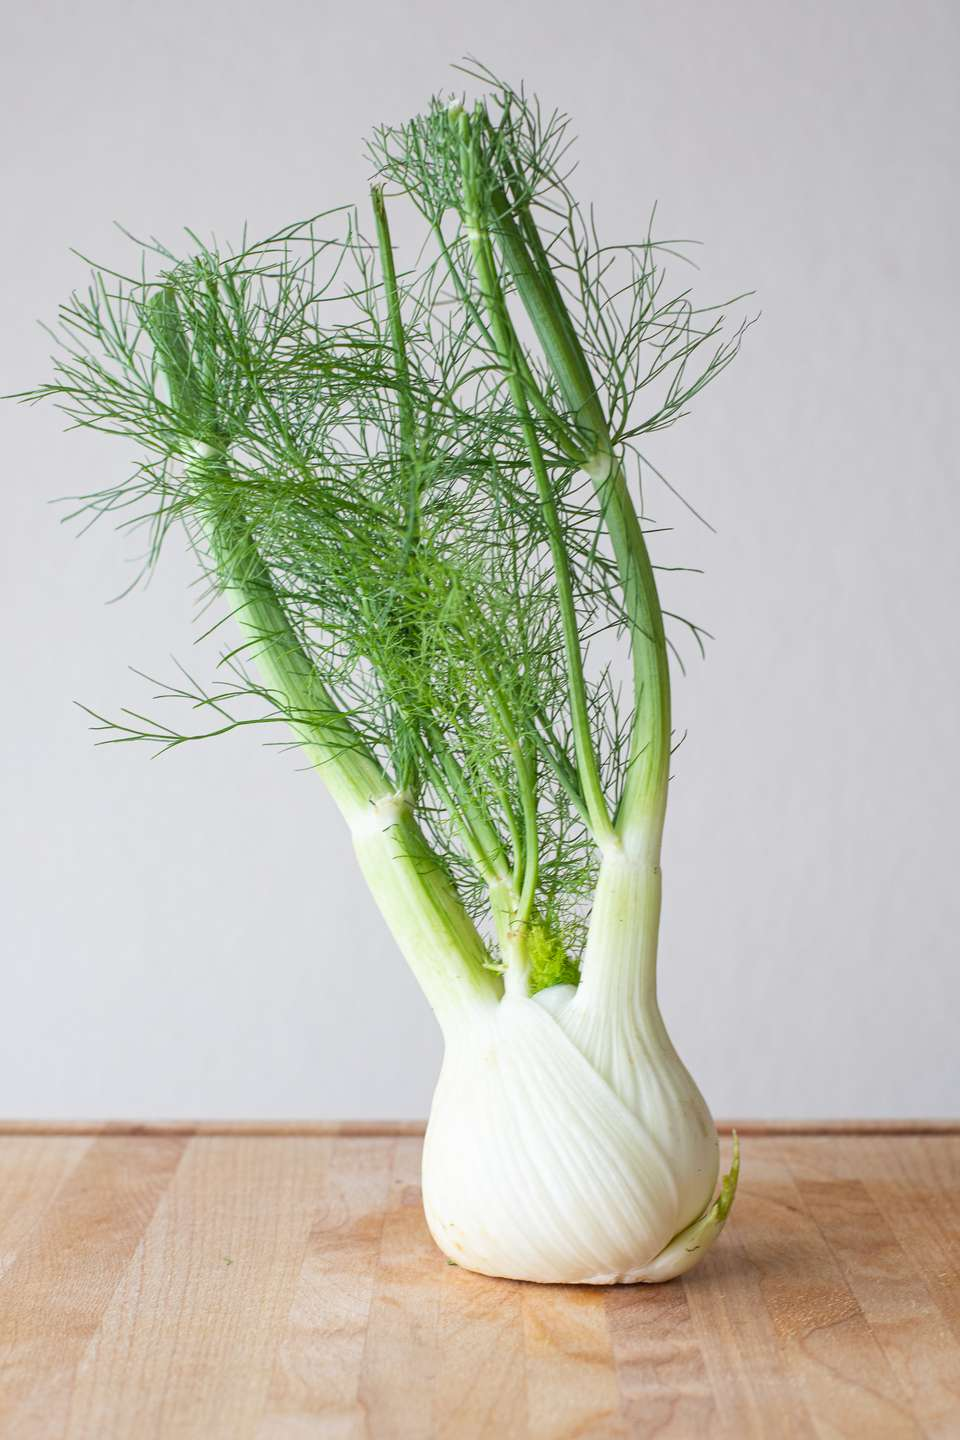 Large fennel bulb and green fronds on wood surface